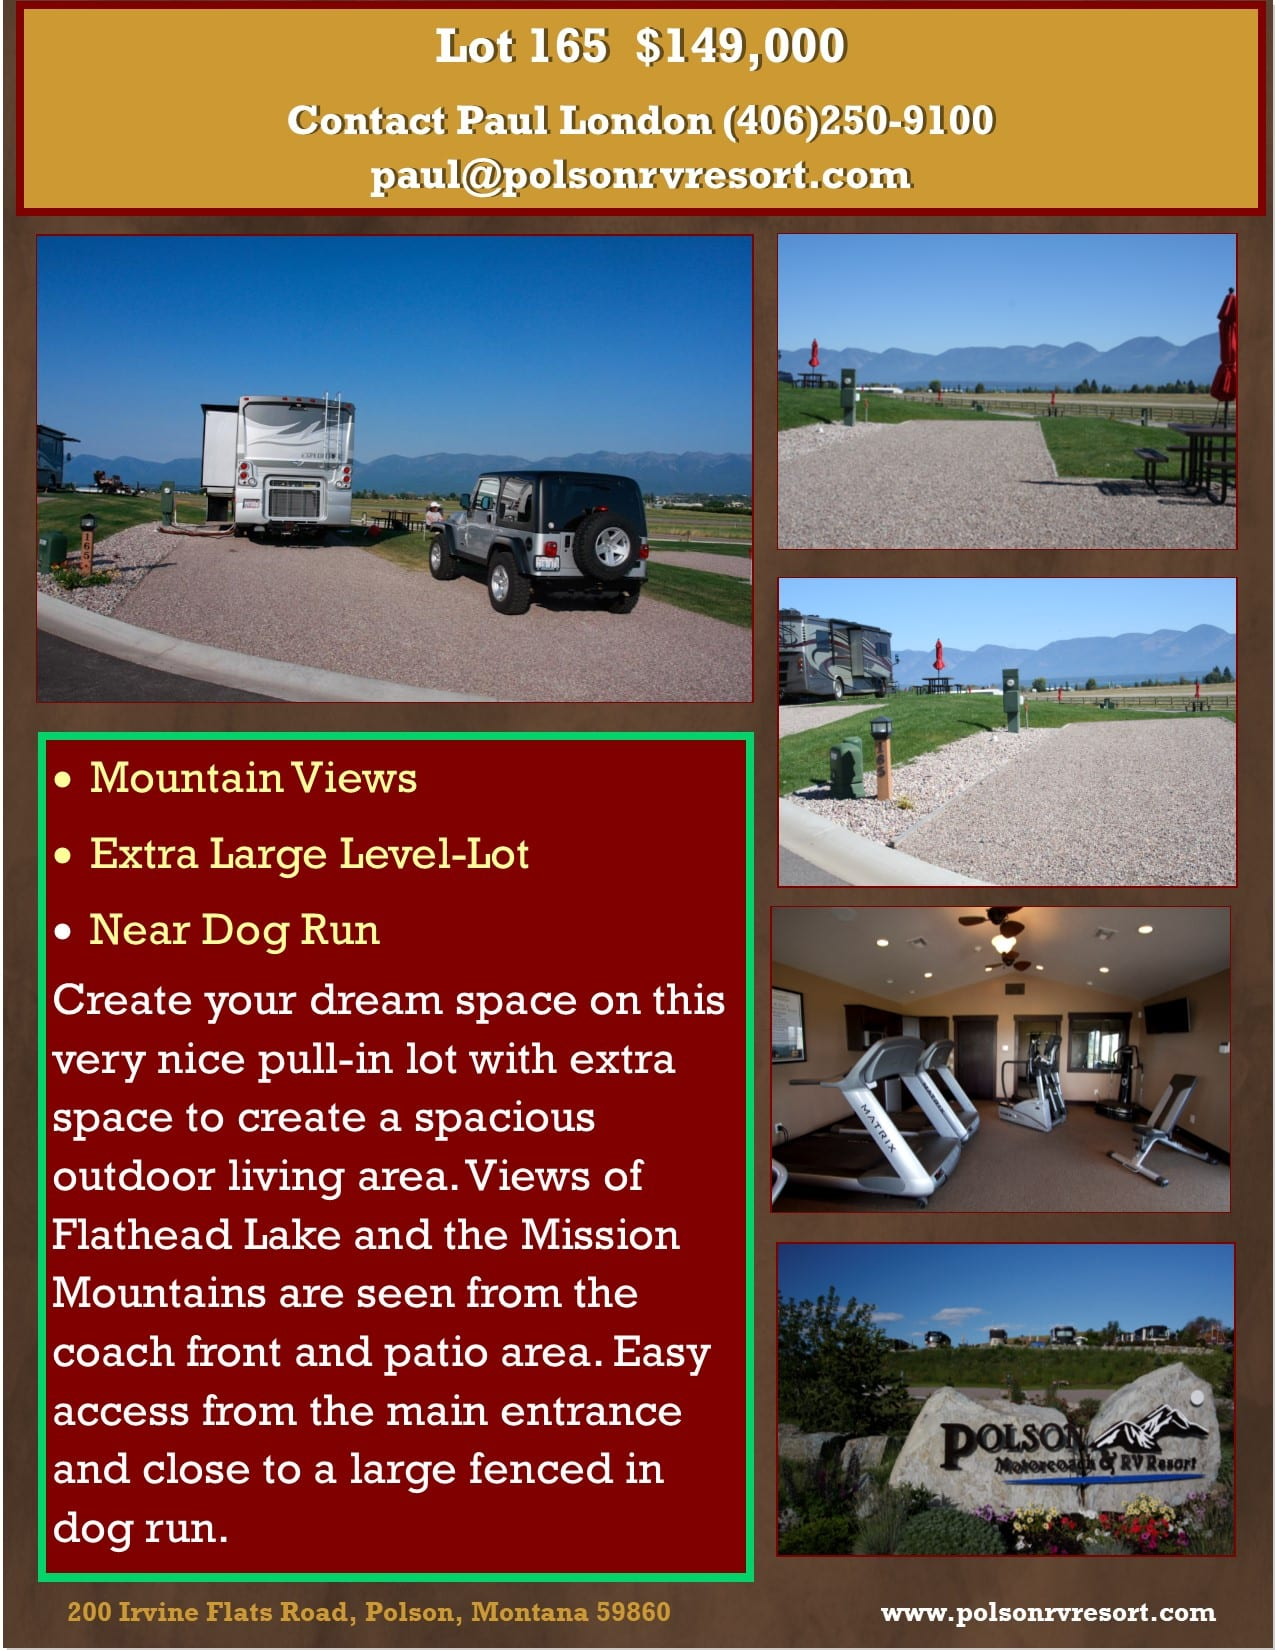 Create your dream space on this very nice pull-in lot with extra space to create a spacious outdoor living area. Views of Flathead Lake and the Mission Mountains are seen from the coach front and patio area. Easy access from the main entrance and close to a large fenced in dog run.